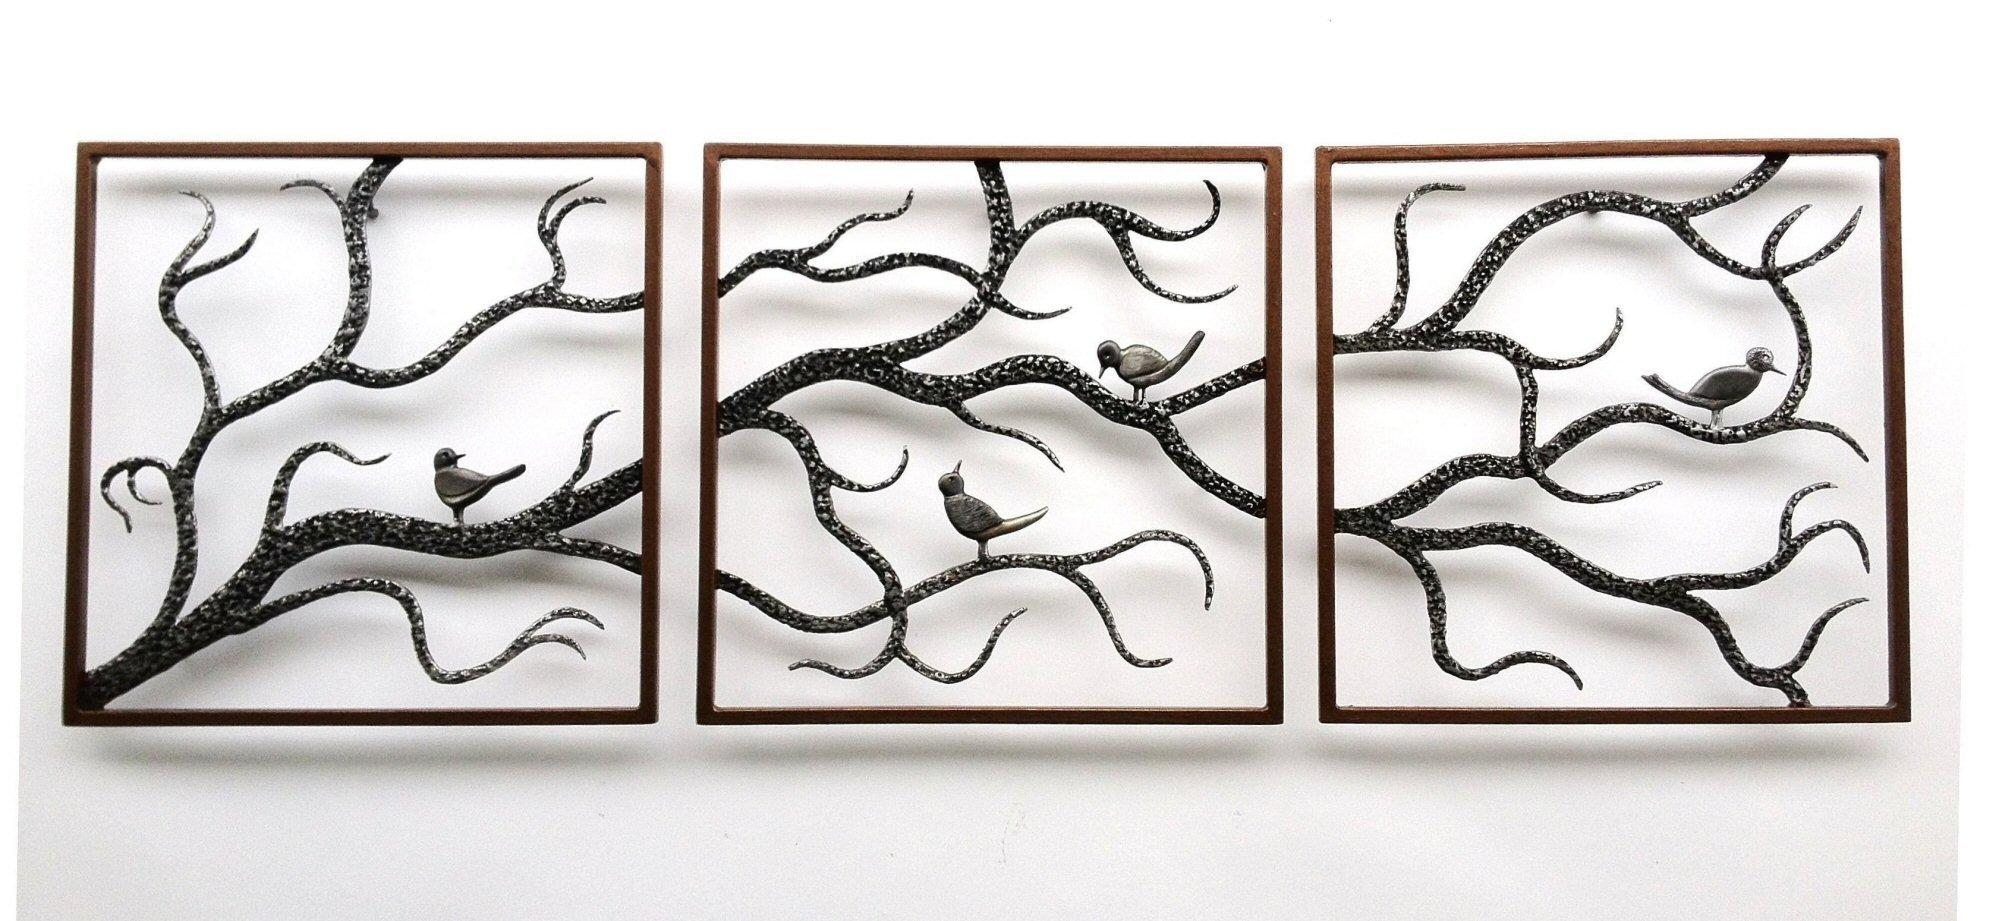 All Metal Wall Art – Shenra Intended For Metal Wall Art Trees And Branches (Image 2 of 20)